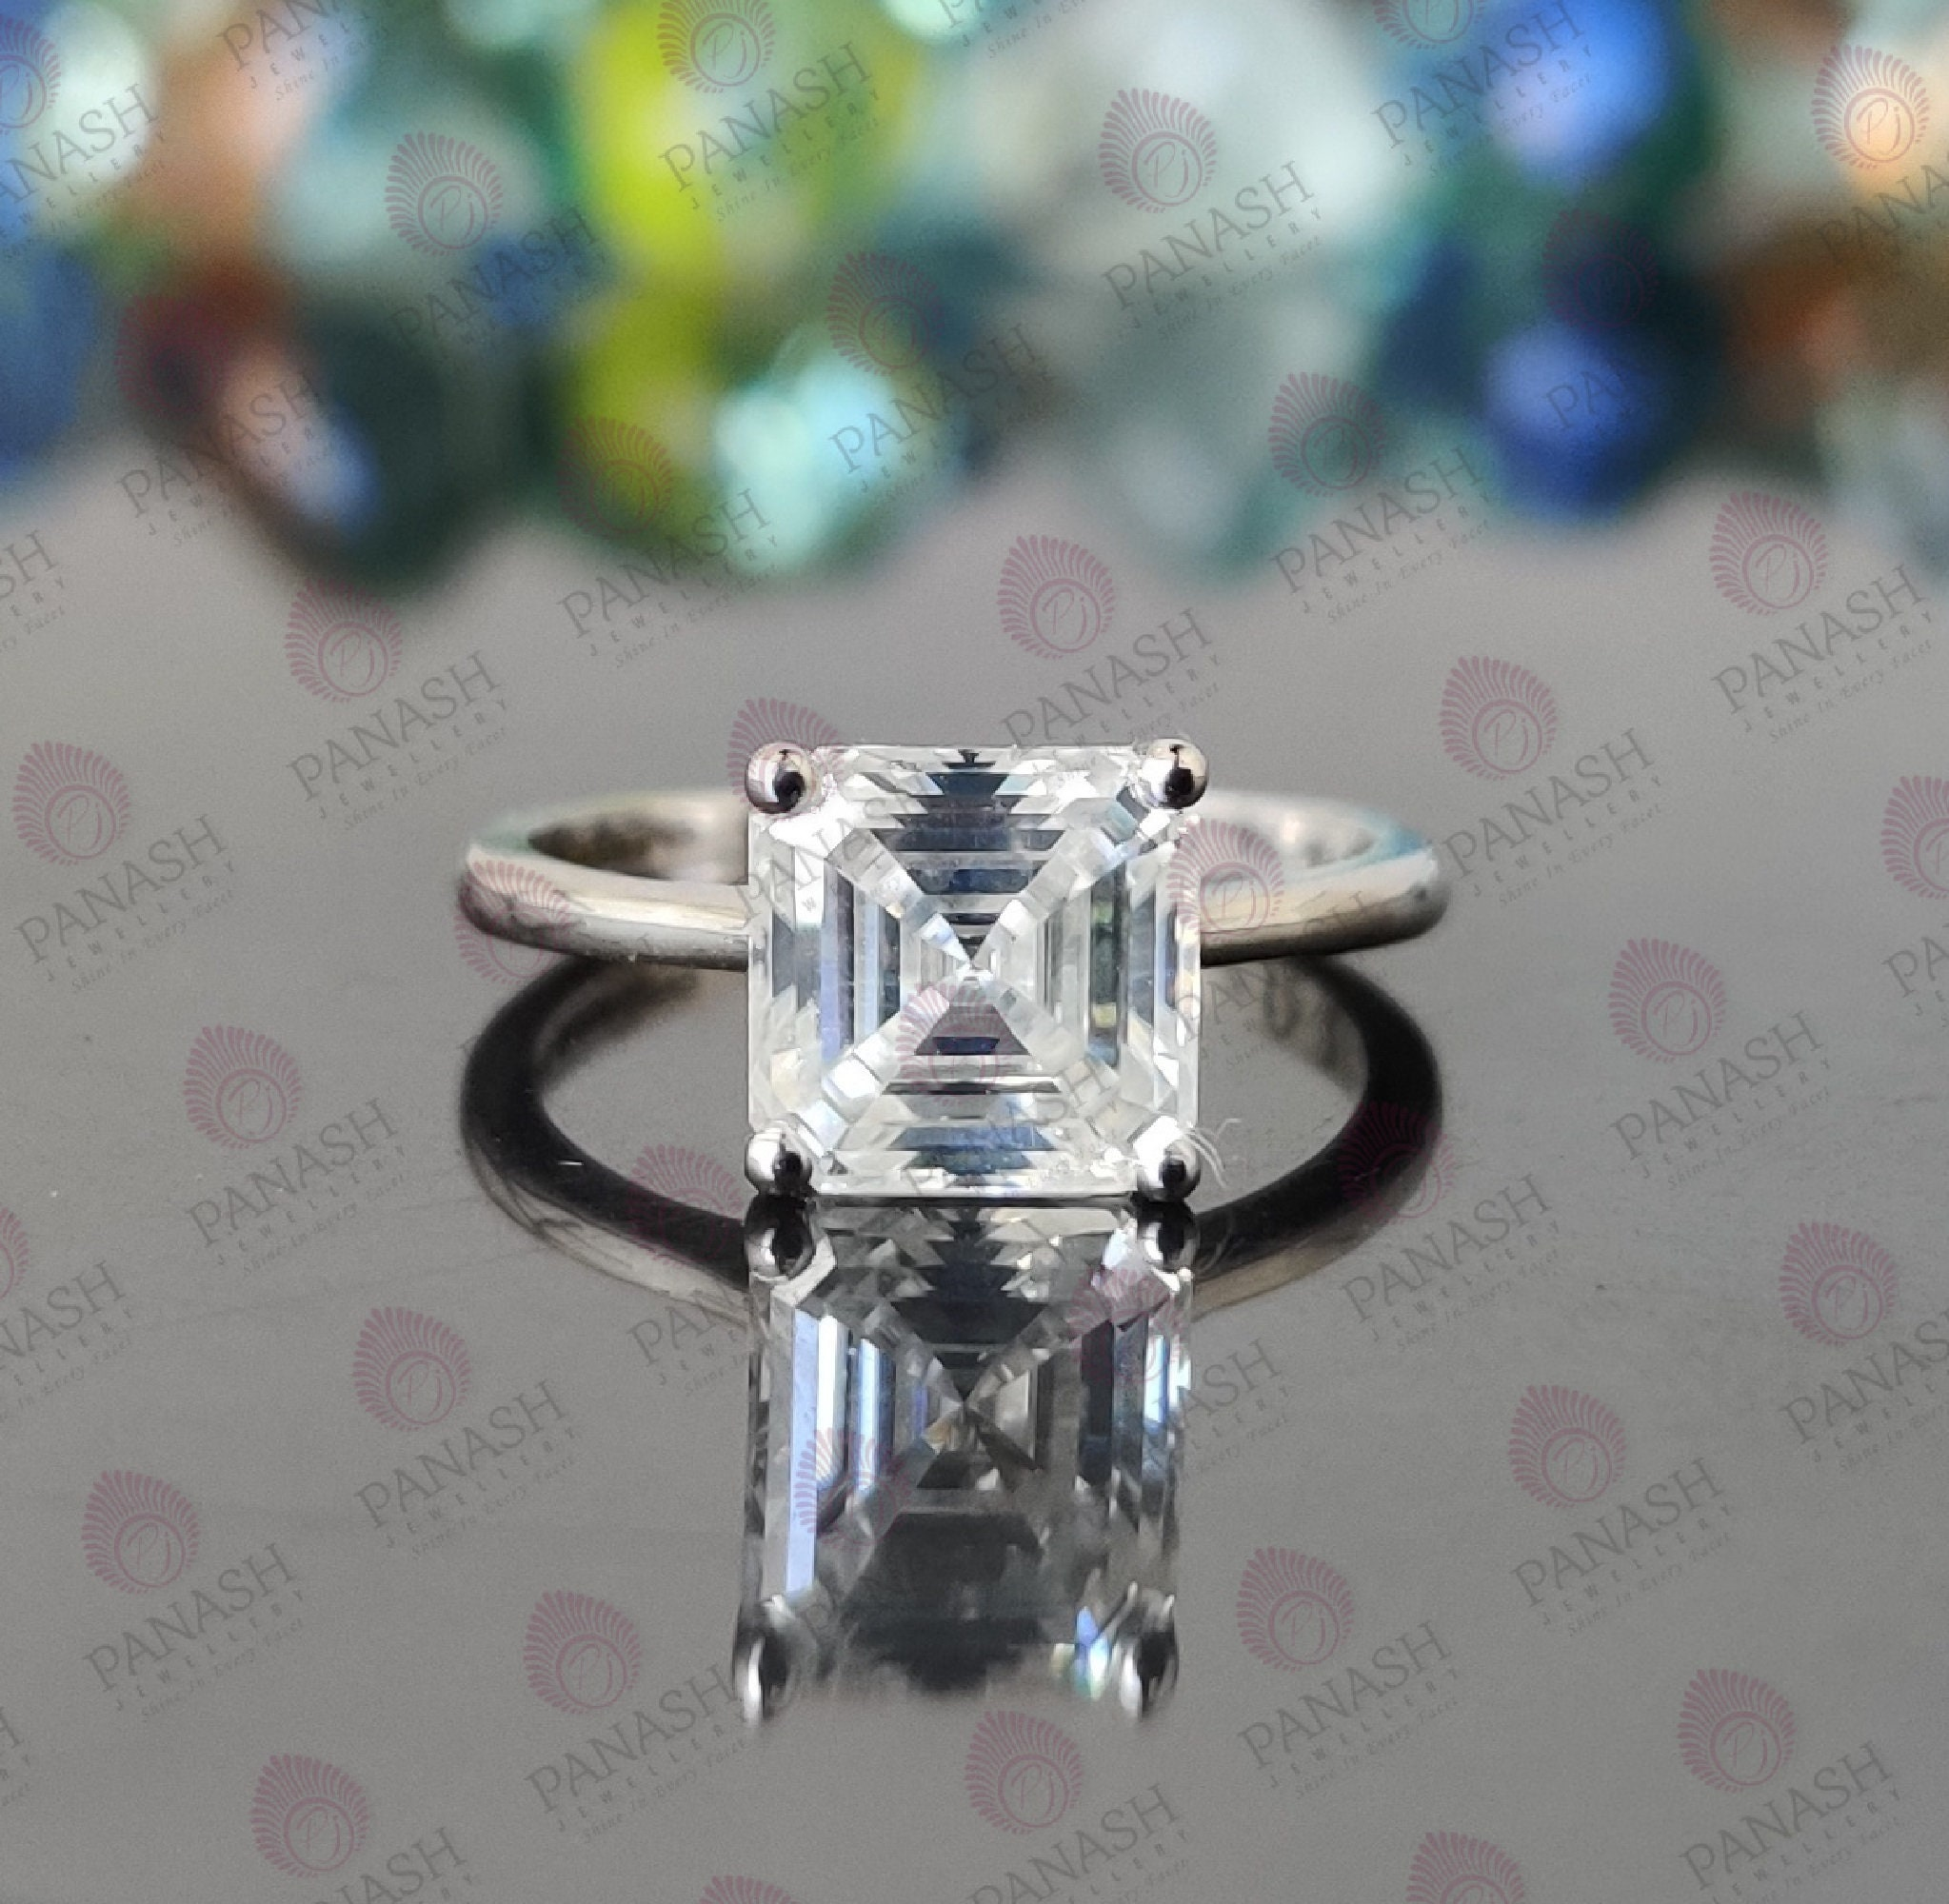 Moissanite Ring Faceted Gemstone Ring 925 Solid Sterling Silver Ring Handmade Silver Ring Engagement Ring Solitaire Wedding Ring for Her